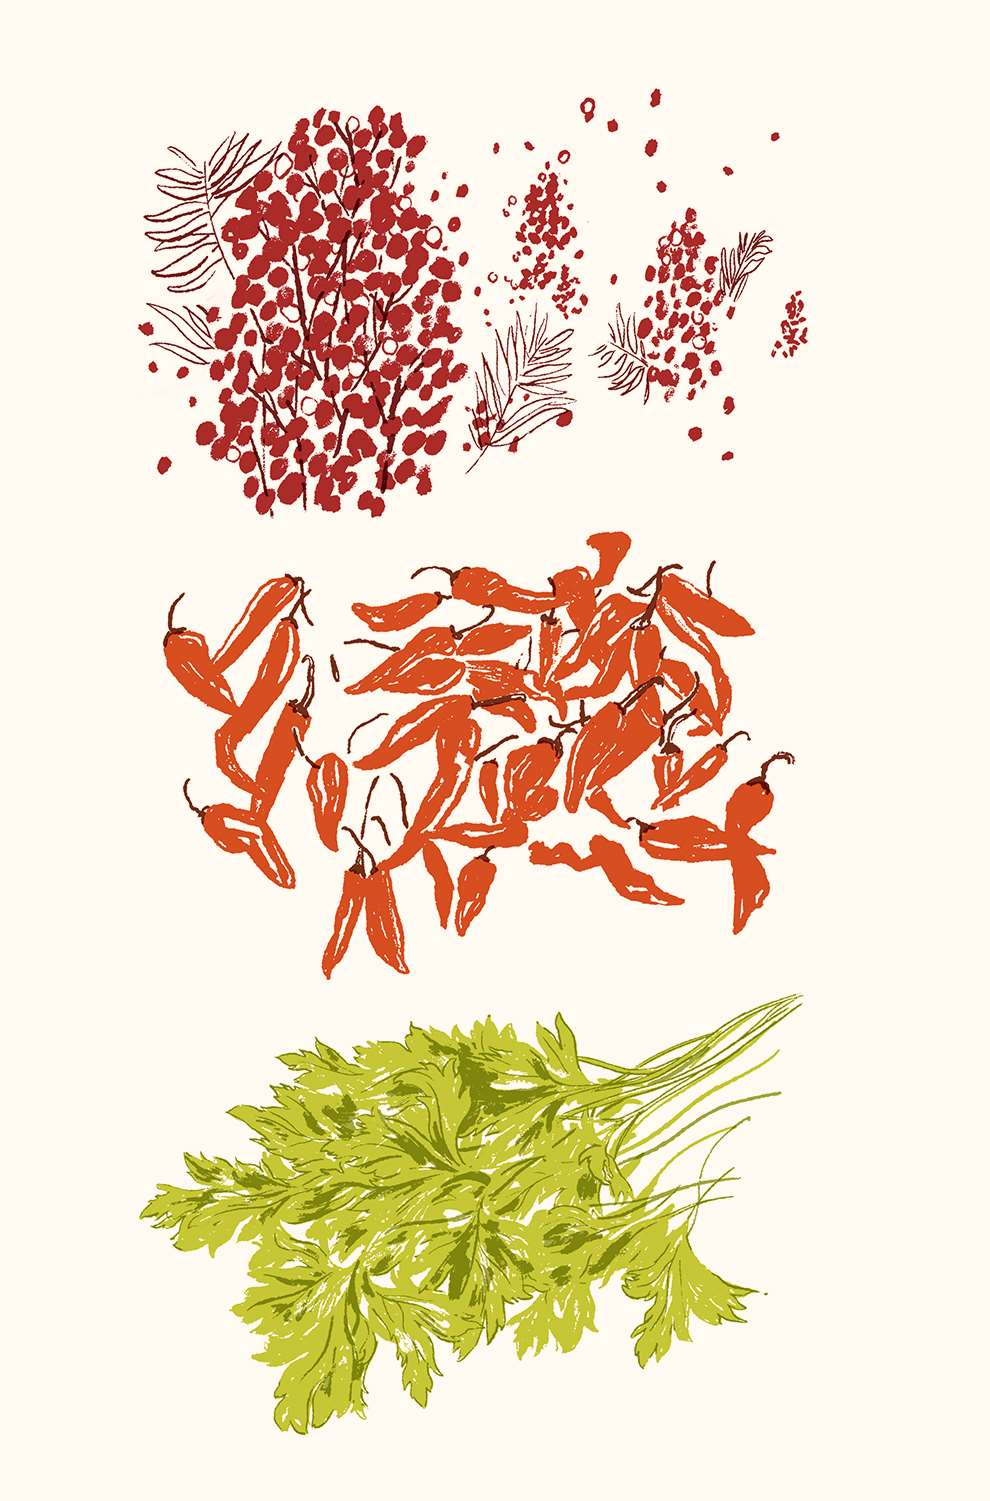 Harry Tennant, Illustration of spices